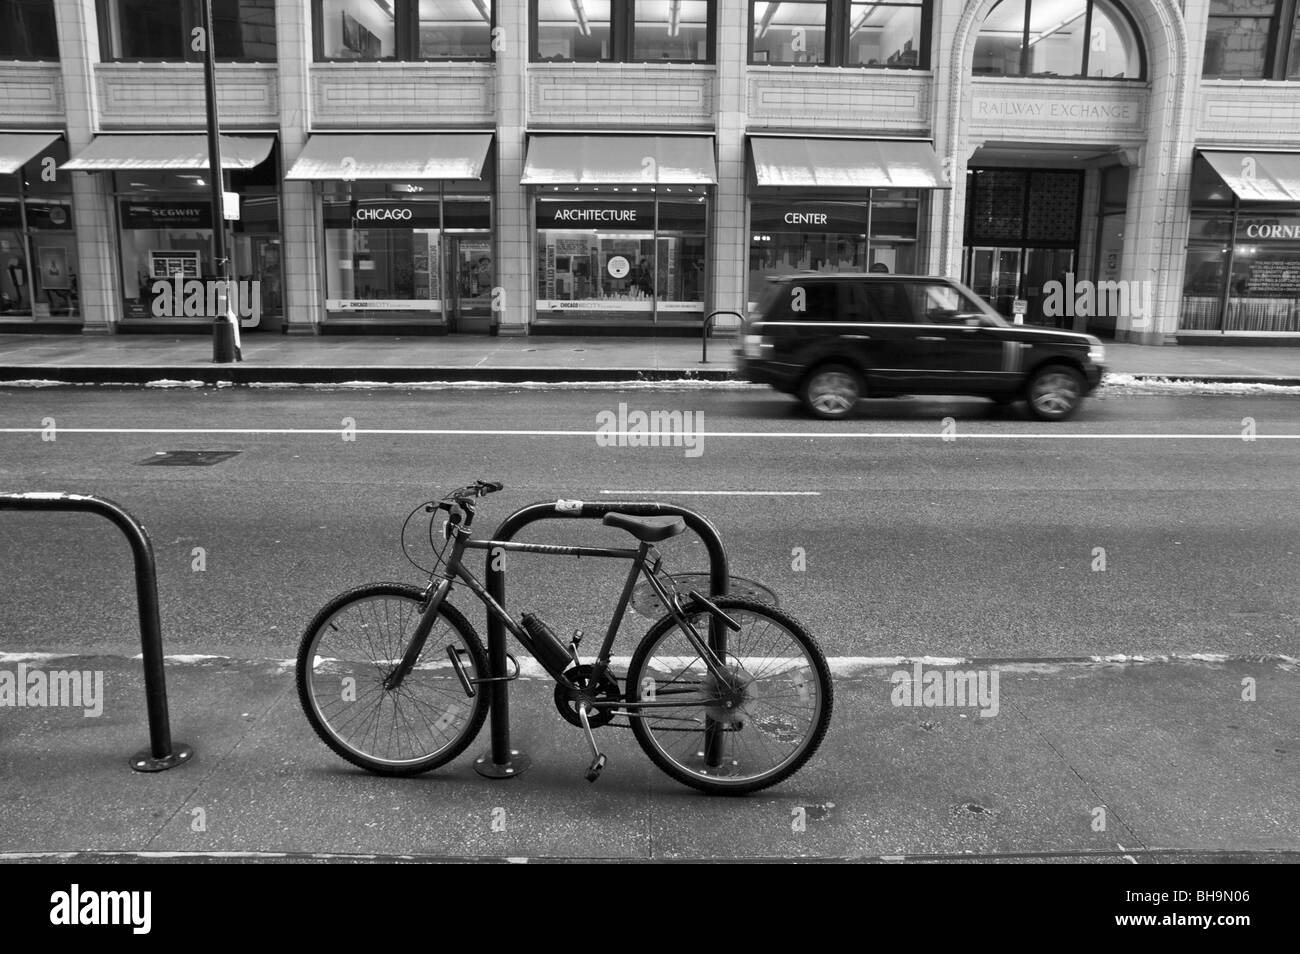 Bicycle locked to bike stand on Jackson Blvd. Chicago, Illinois. Santa Fe Building. Black and white. - Stock Image